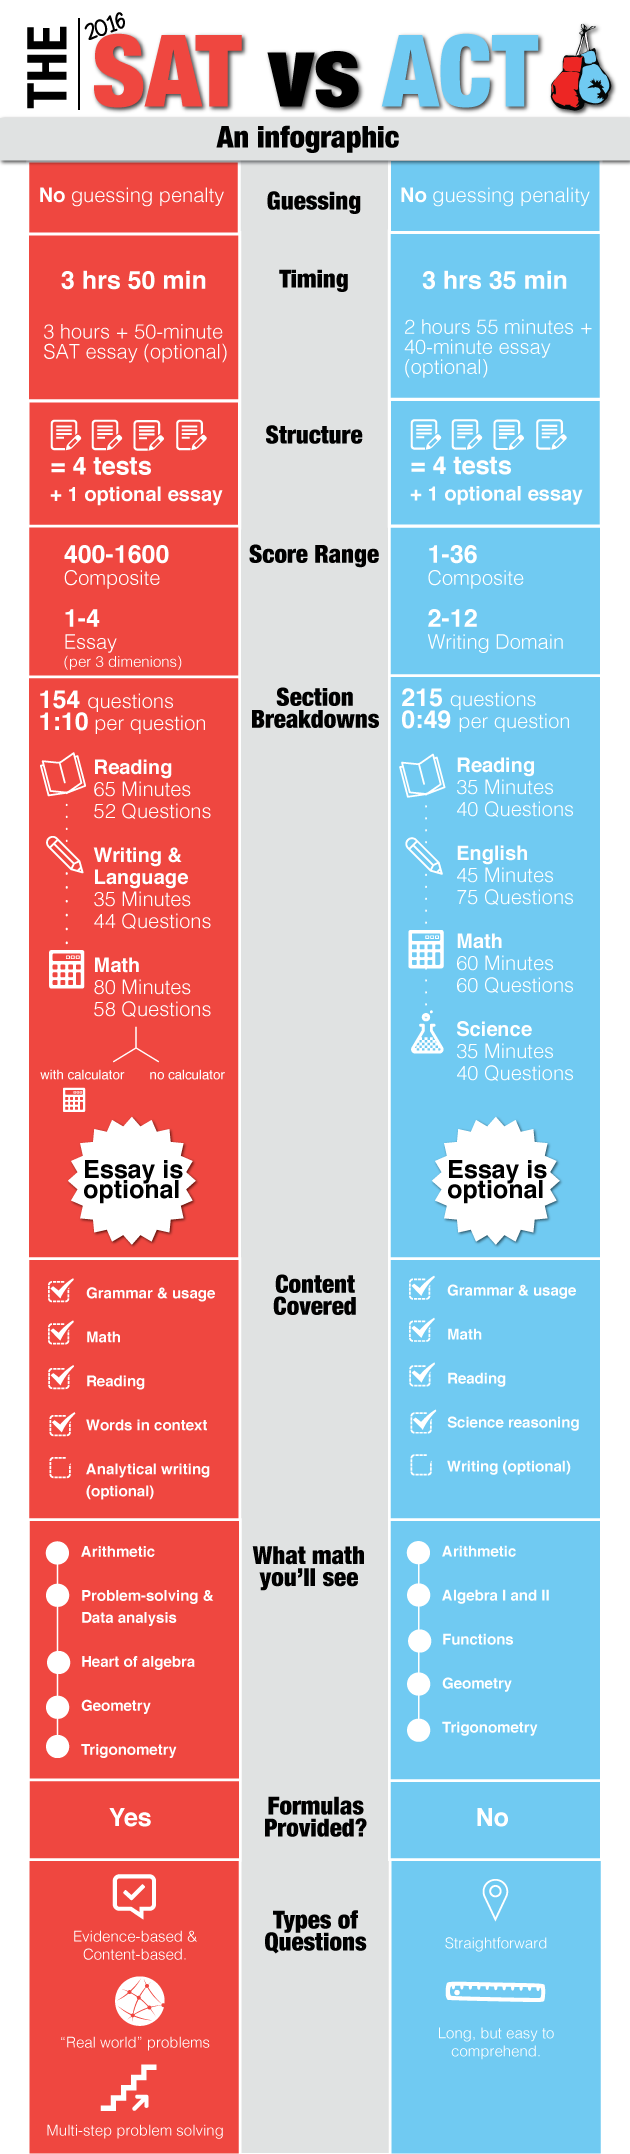 SAT vs. ACT Infographic